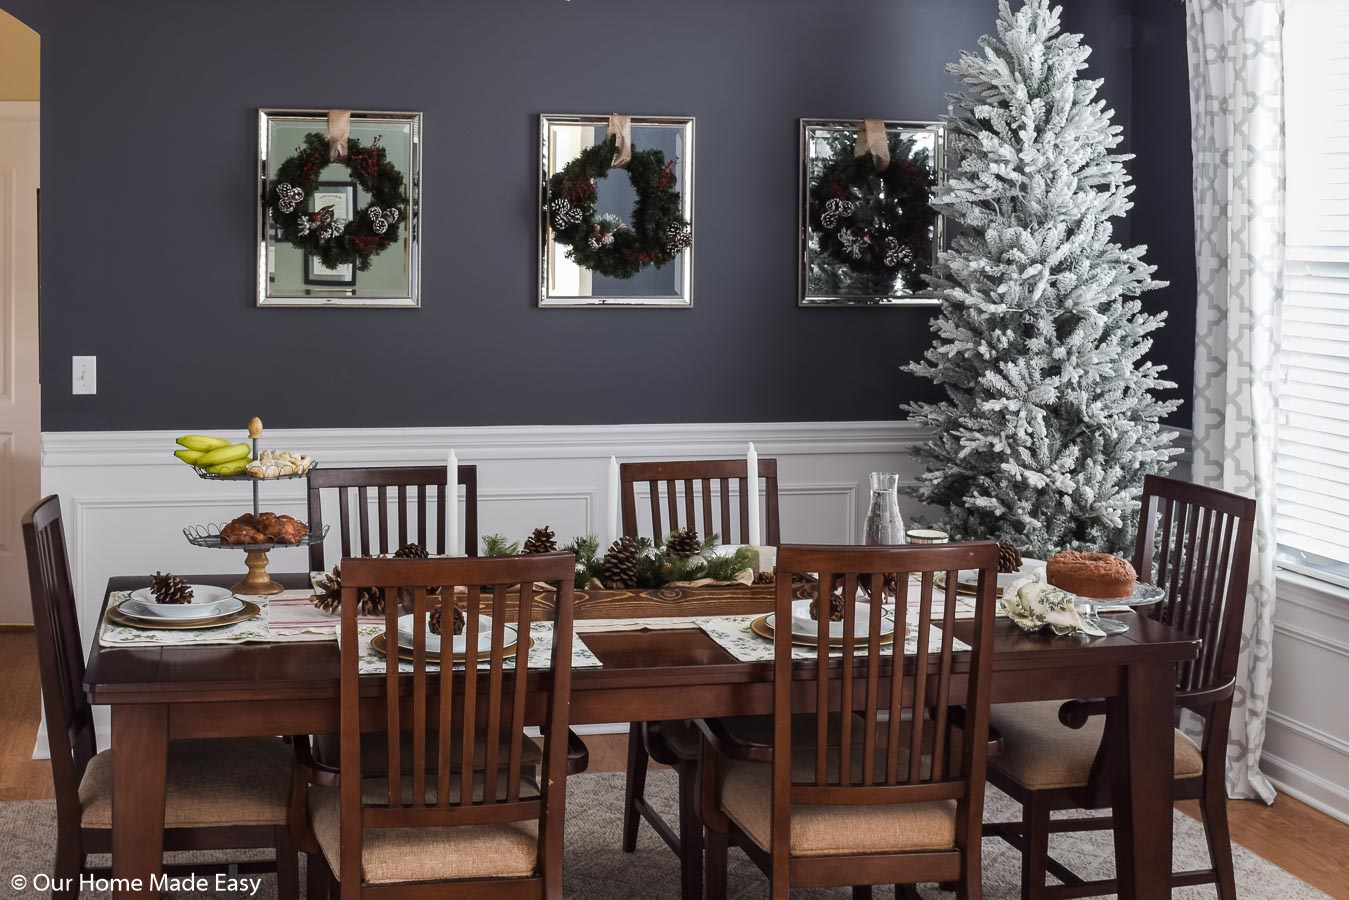 Our festive Christmas dining room is adorned with simple Christmas decor; wreaths, pinecones, and white-frosted Christmas tree